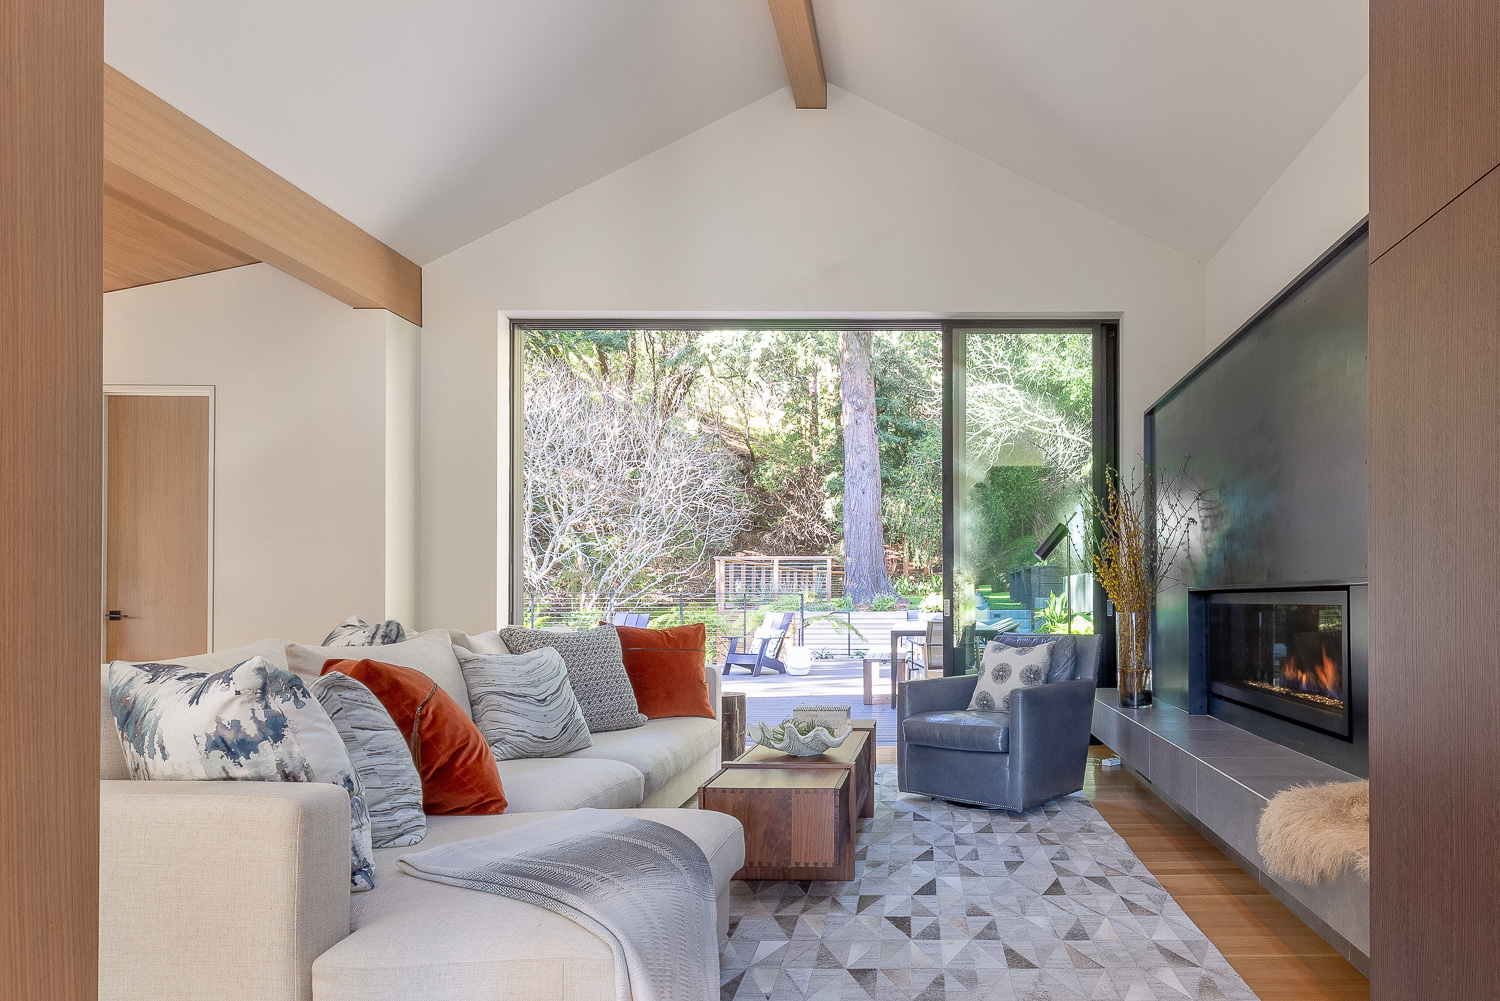 Beside the kitchen, the living room opens up to a comfortable porch. A floor lamp from Arteriors offers light to a leather chair from Lee Industries;at an angle, the chair faces a soft sectional from Camerich. The coffee table is from Fourhands.